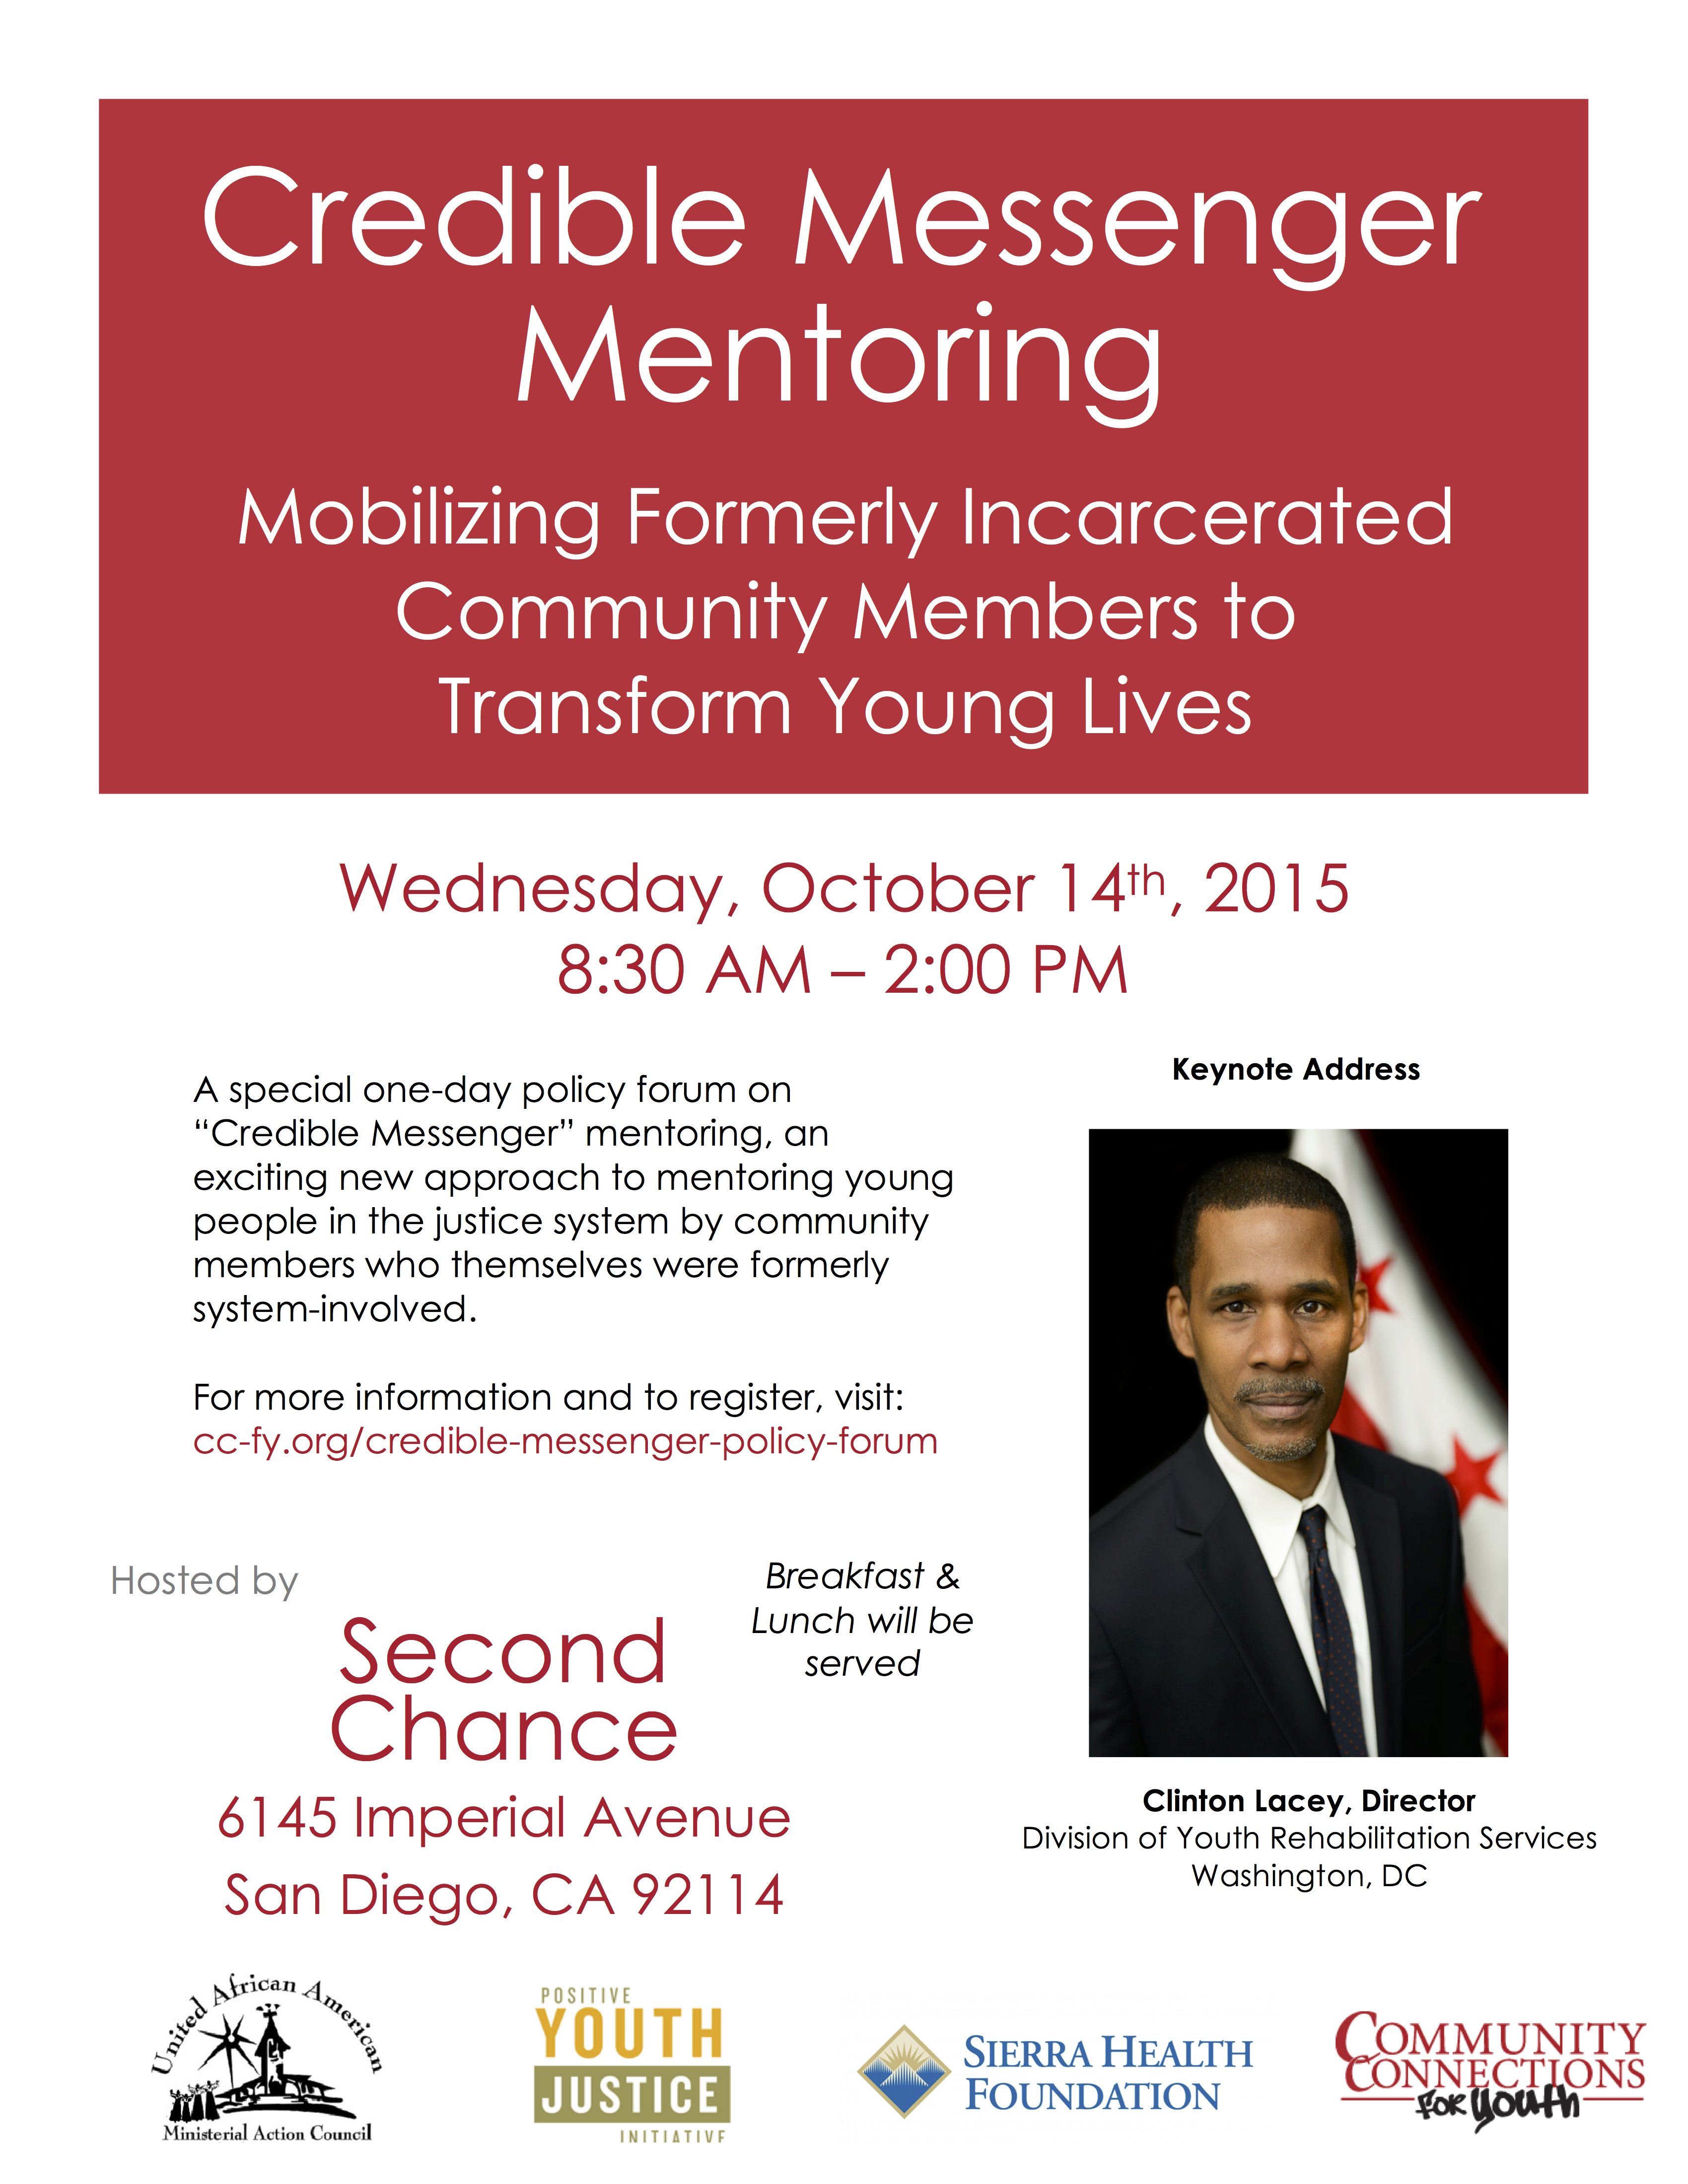 Credible Messenger Mentoring Policy Forum